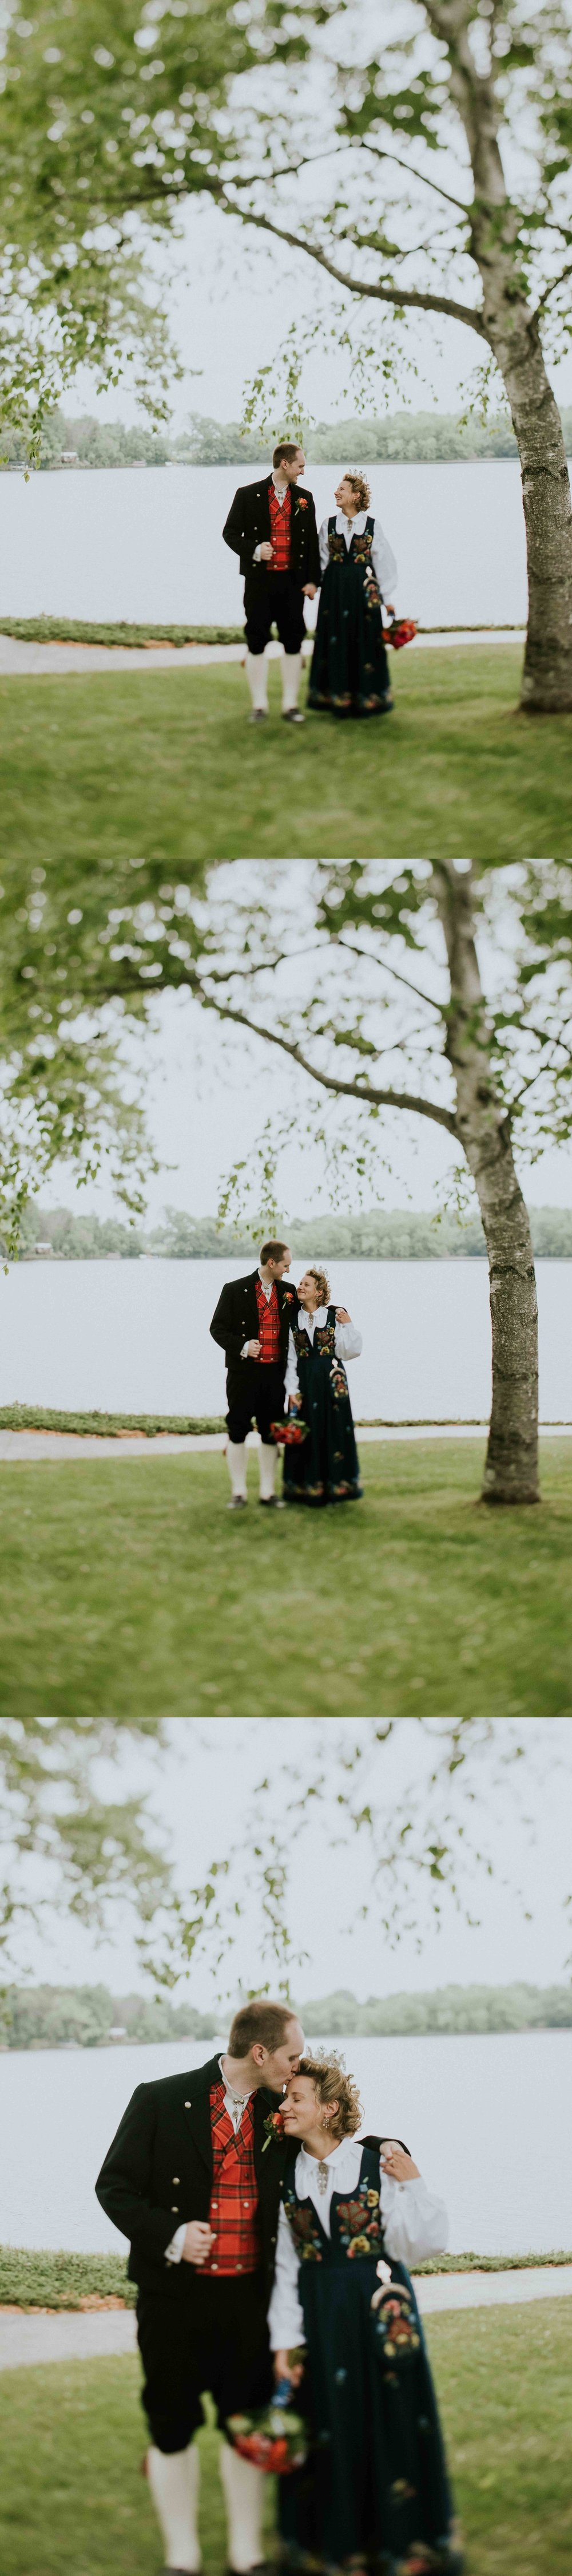 Norwegian Wedding Stevens Point Wisconsin Wedding Photographer Chloe Ann Photography_0005.jpg